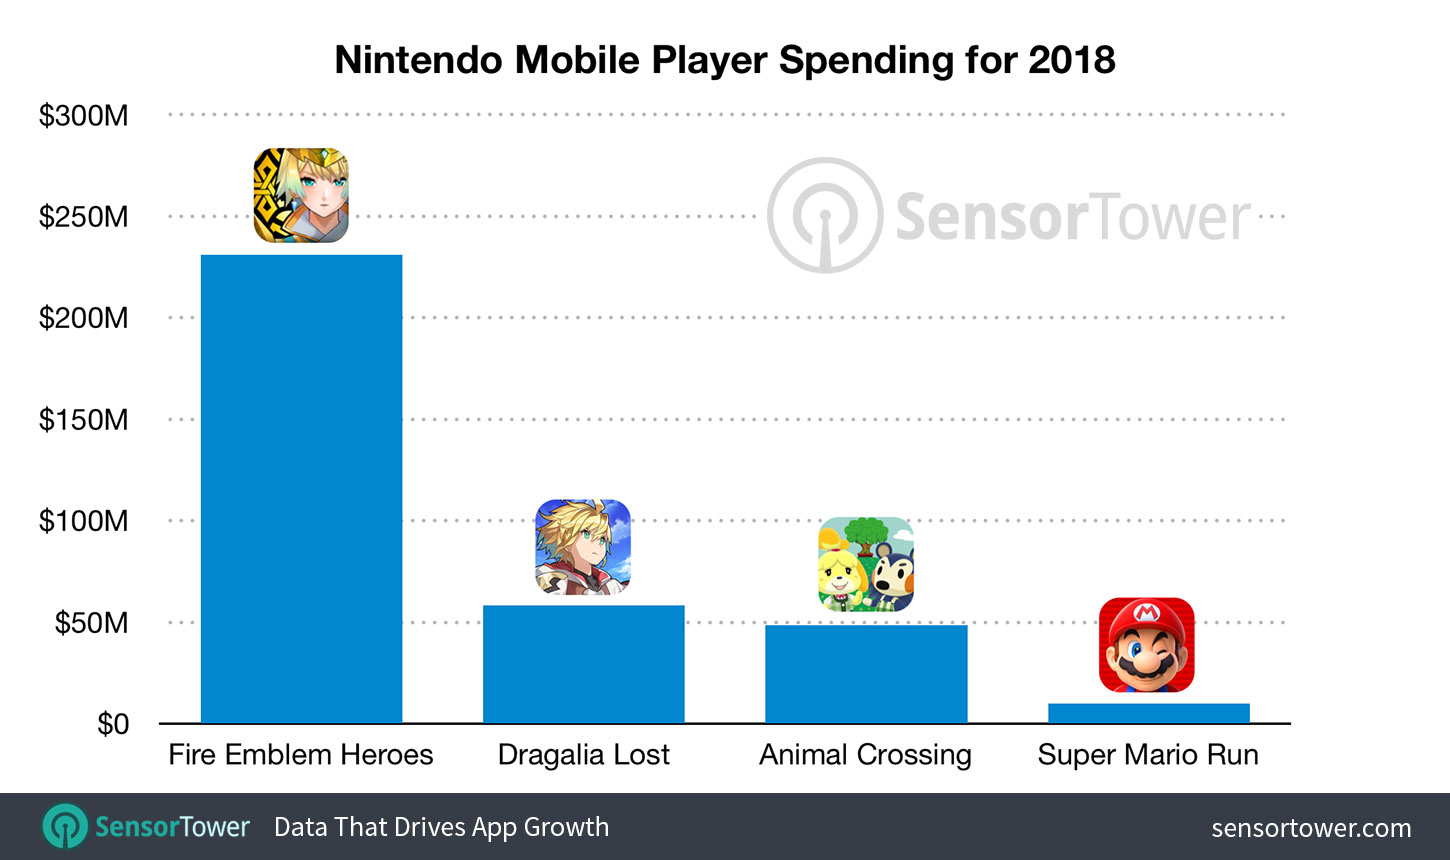 Fire Emblem Heroes revenue